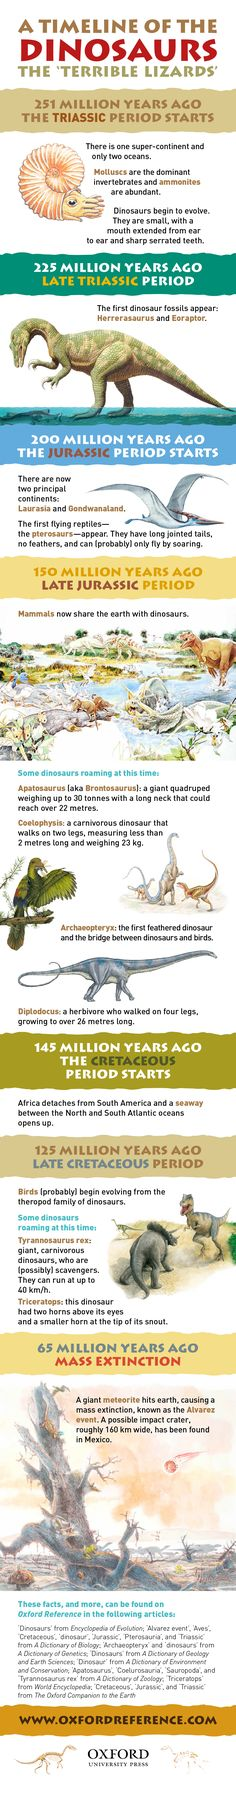 Take a crash course on the history of the dinosaurs, including what types of dinosaurs were roaming when, with this infographic.